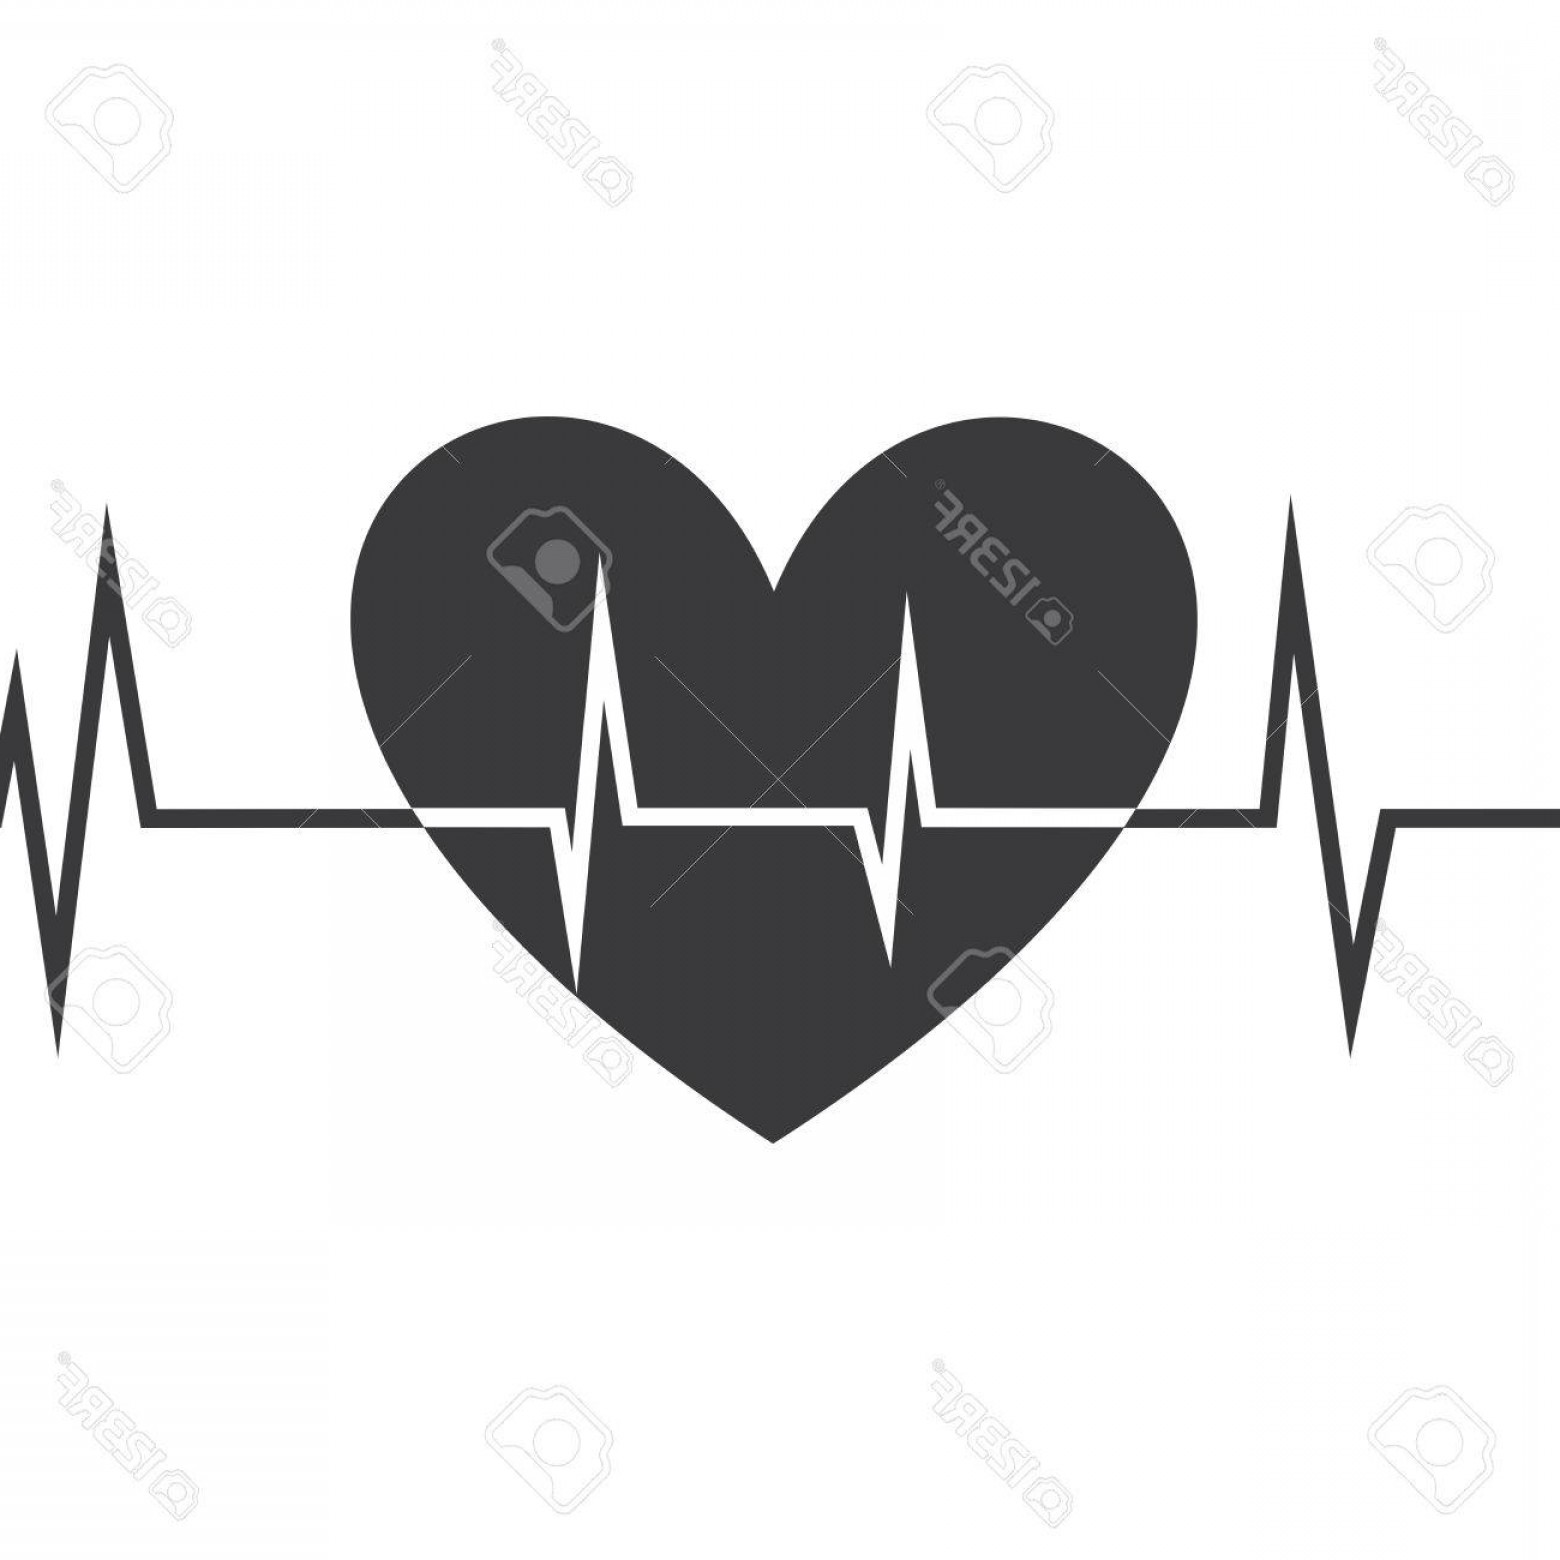 Heart With EKG Line Vector: Photostock Vector Heart Icon With Ekg Line Vector Design